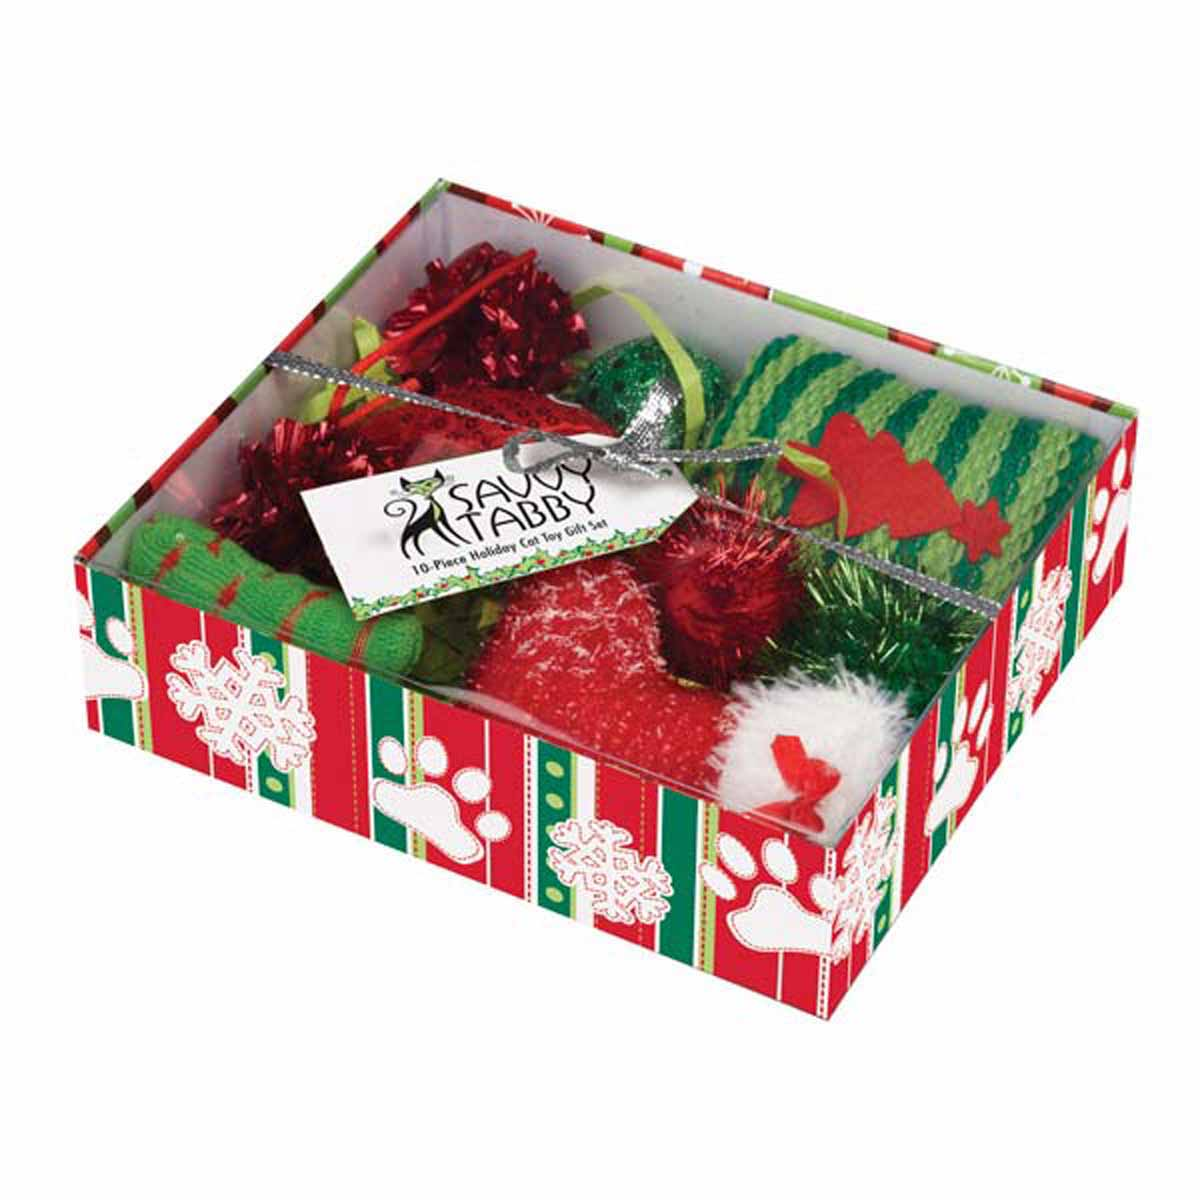 Savvy tabby crinkle kitty holiday gift set green and red